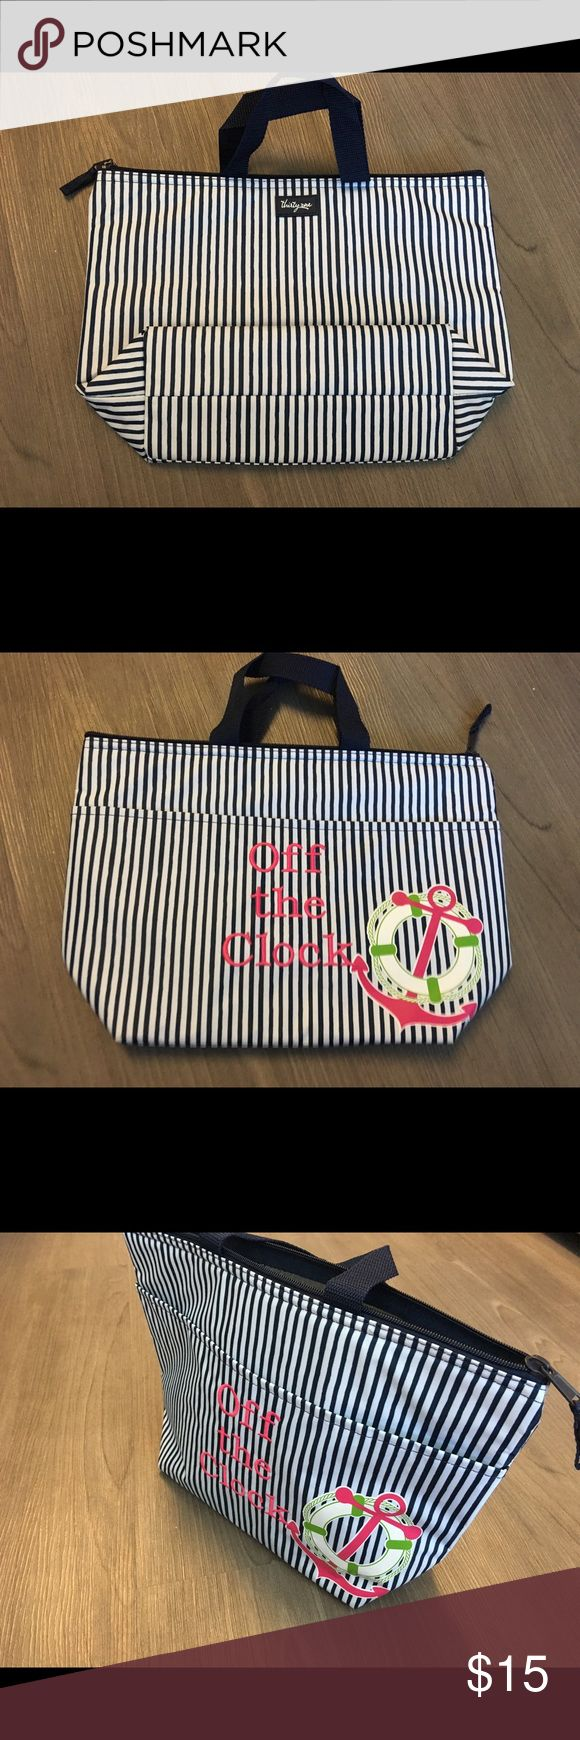 """Thirty-One Lunch Bag Thermal Brand new without tags Thirty-one thermal (lunch bag size).  This cute white and blue stripe design includes """"Off The Clock"""" embroidery on the front side. Thirty-One Bags"""